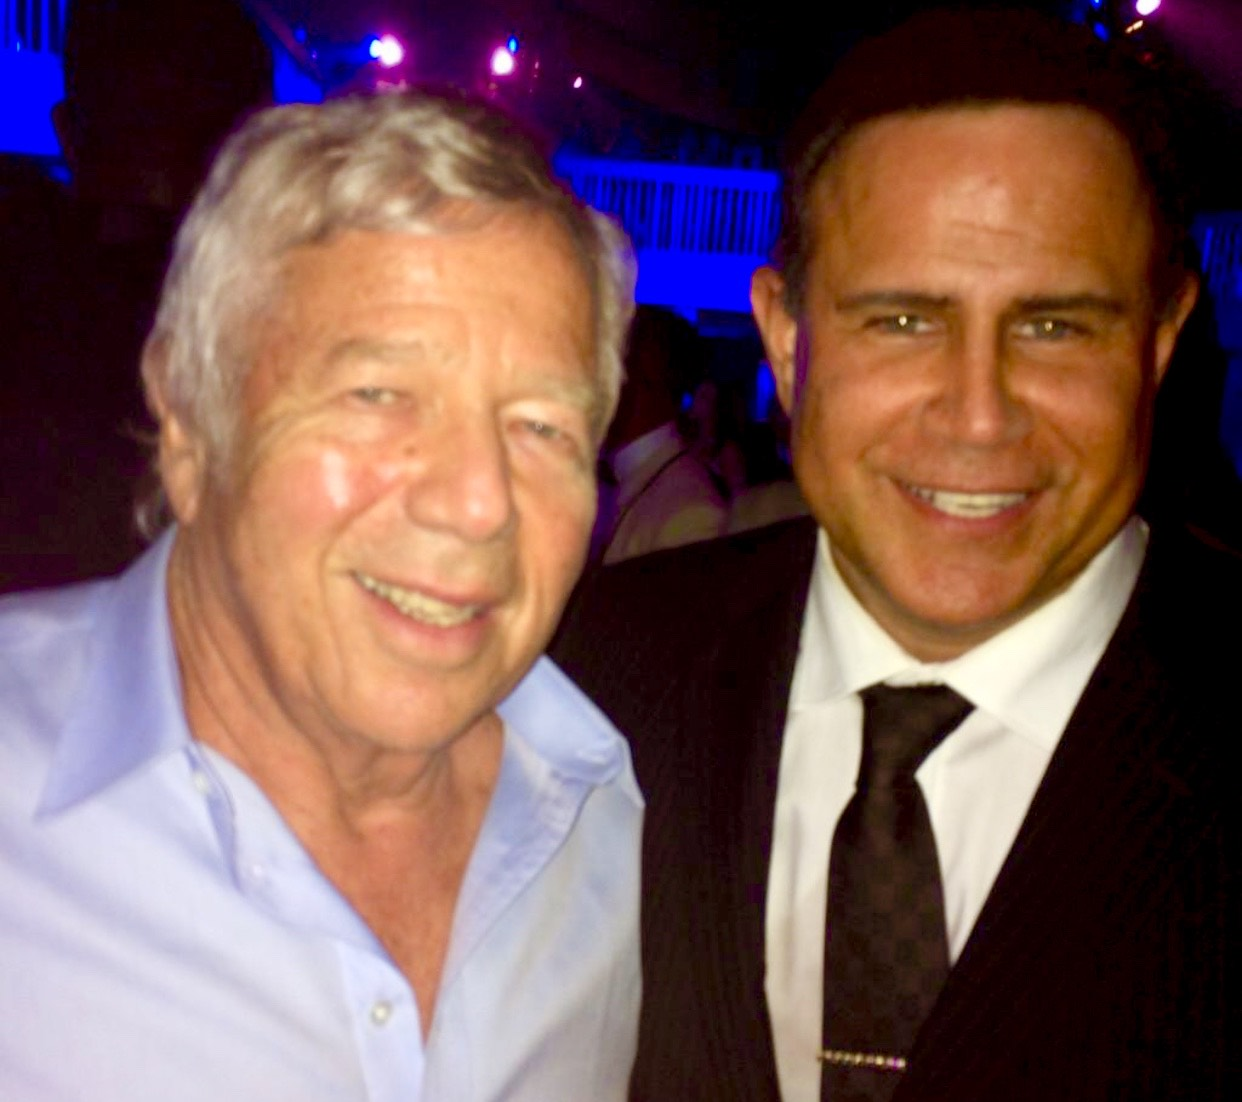 Robert Kraft, Patriots Robert Kraft, Robert Kraft Billionaire, Keith Middlebrook, Keith Middlebrook Pro Sports, Success Wealth Prosperity, YouTube.com Keith Middlebrook, Videos Keith Middlebrook, Keith Middlebrook Foundation, Charity for Kids, N355KM, Keith Middlebrook Super Entrepreneur Icon, Keith Middlebrook Brand, Keith Middlebrook Real Iron Man, Keith Middlebrook Net Worth, Keith Middlebrook Bodybuilder, Keith Middlebrook Enterprise, Success, Floyd Mayweather,